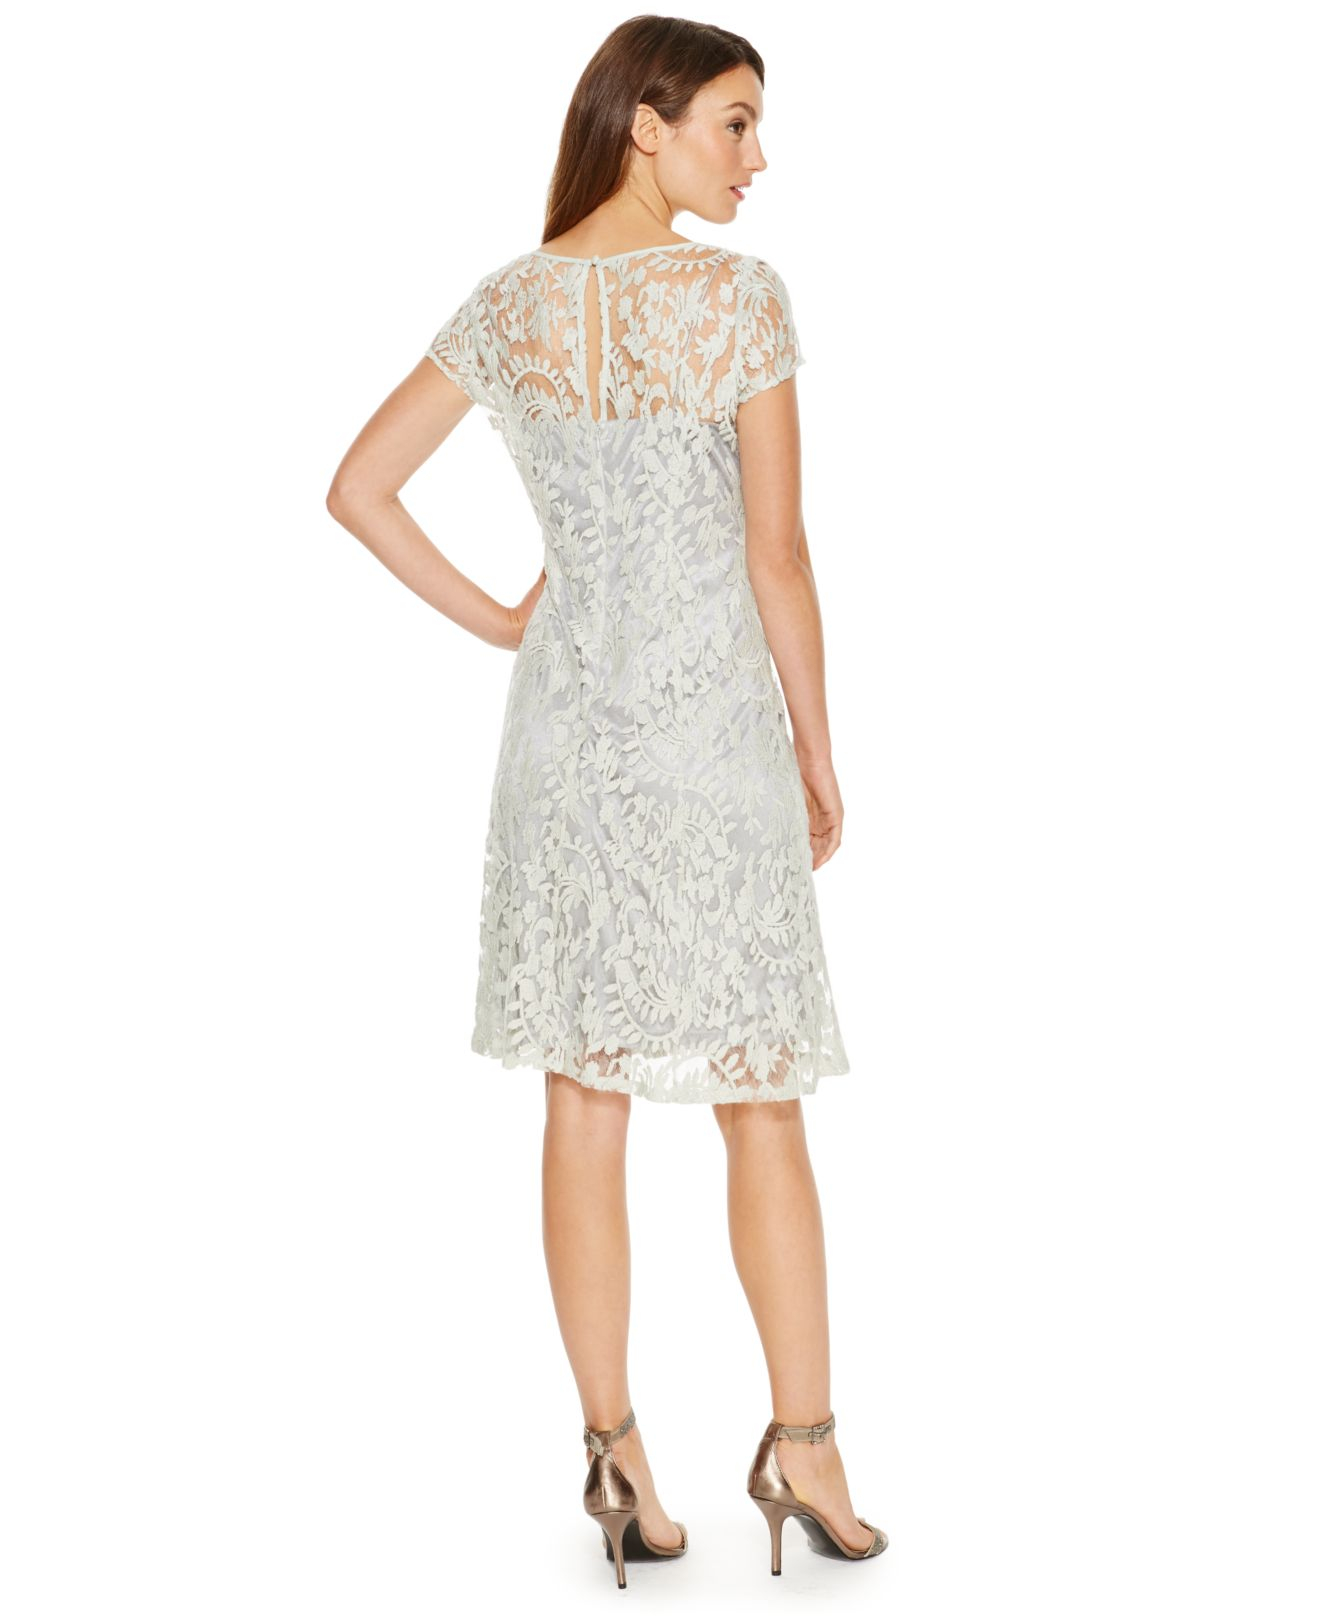 Lyst - Adrianna Papell Illusion-lace Cap-sleeve Dress in Green